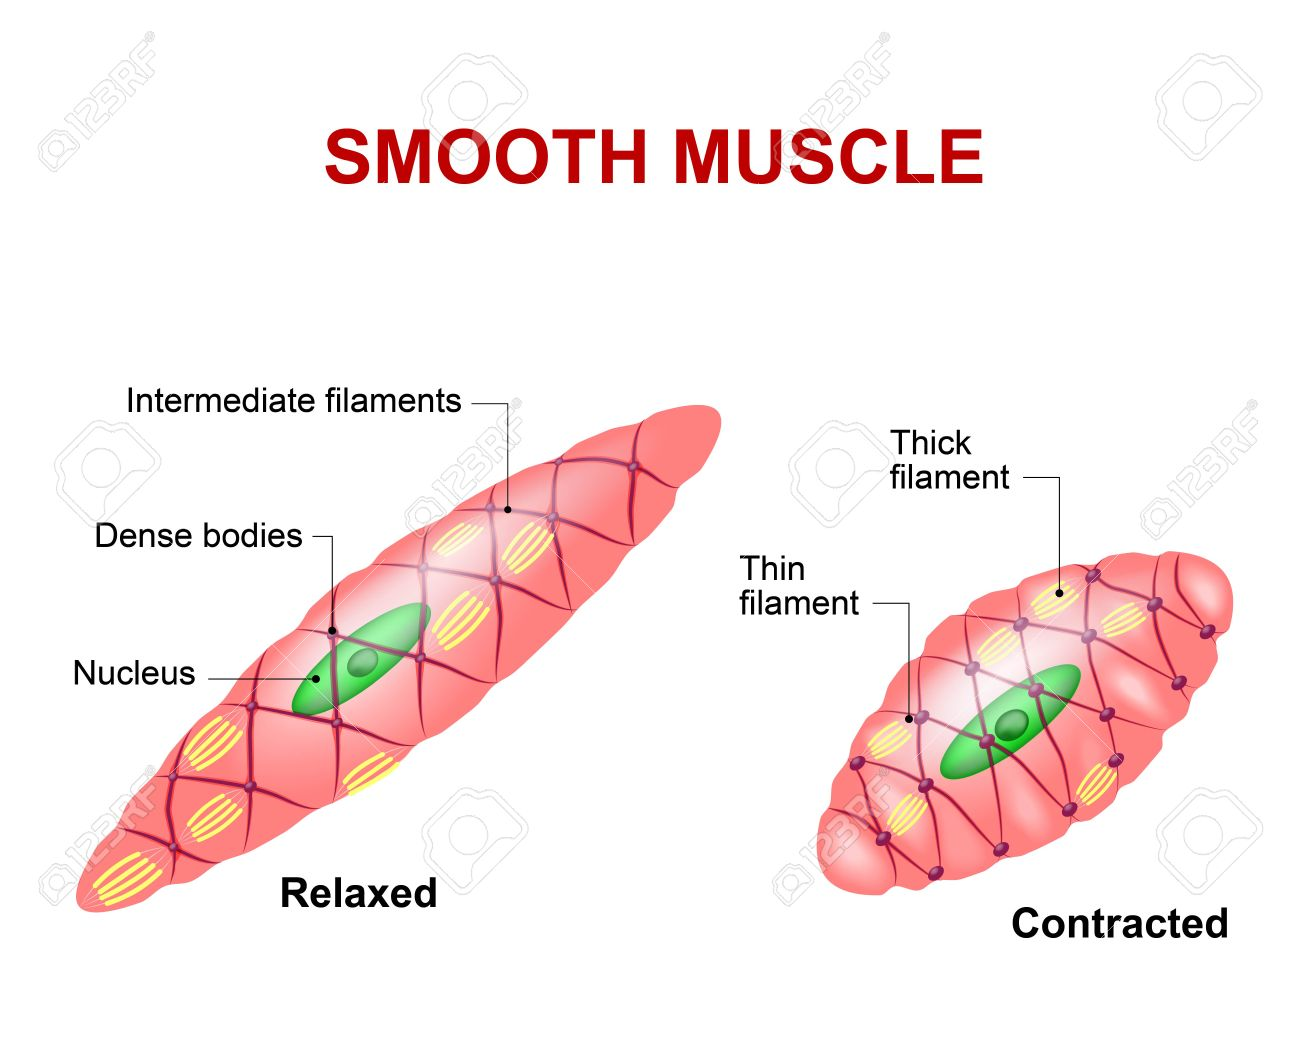 Smooth Muscle Tissue Anatomy Of A Relaxed And Contracted Smooth